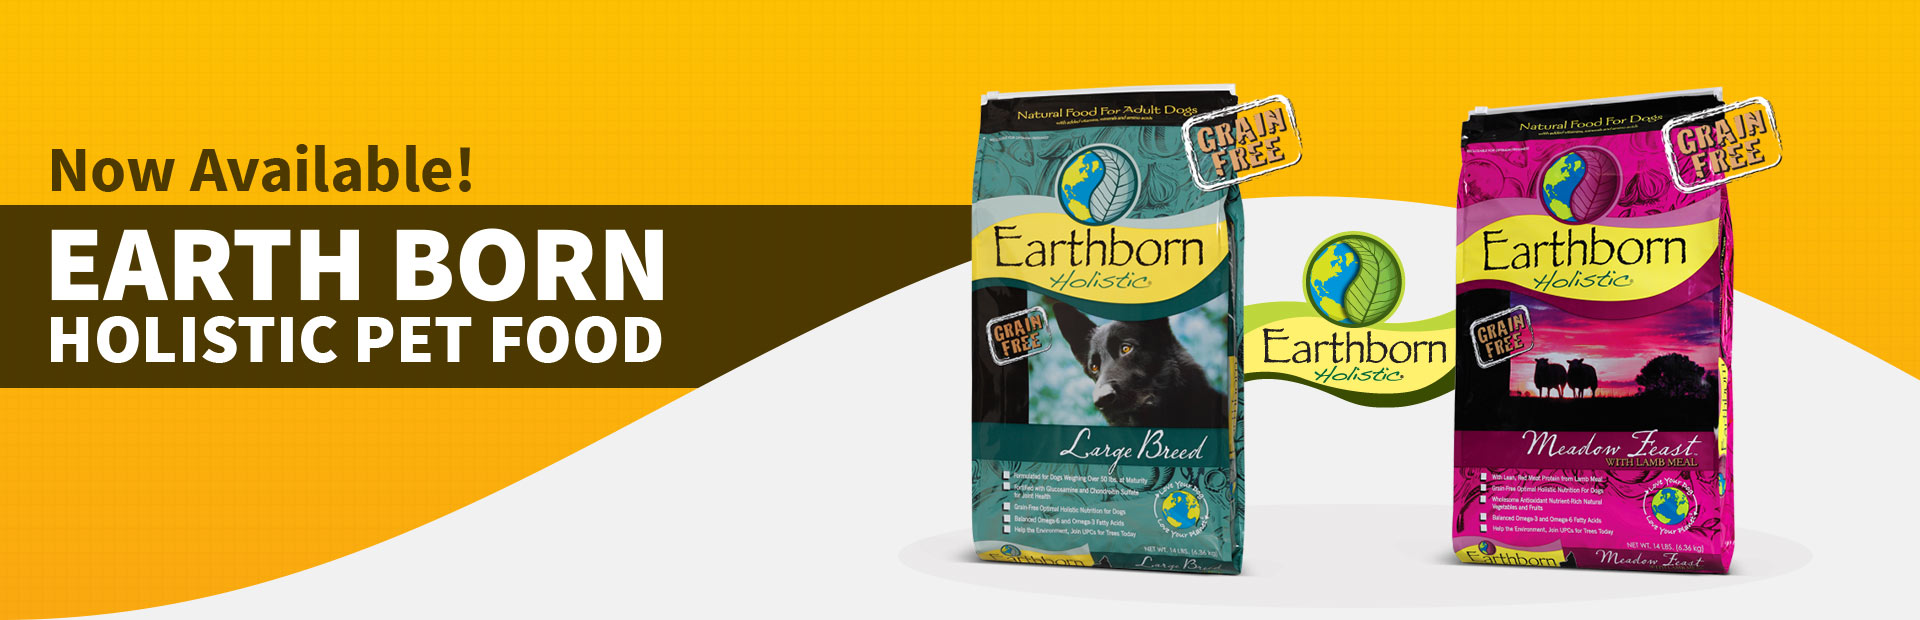 Now Available: Earth Born Holistic Pet Food